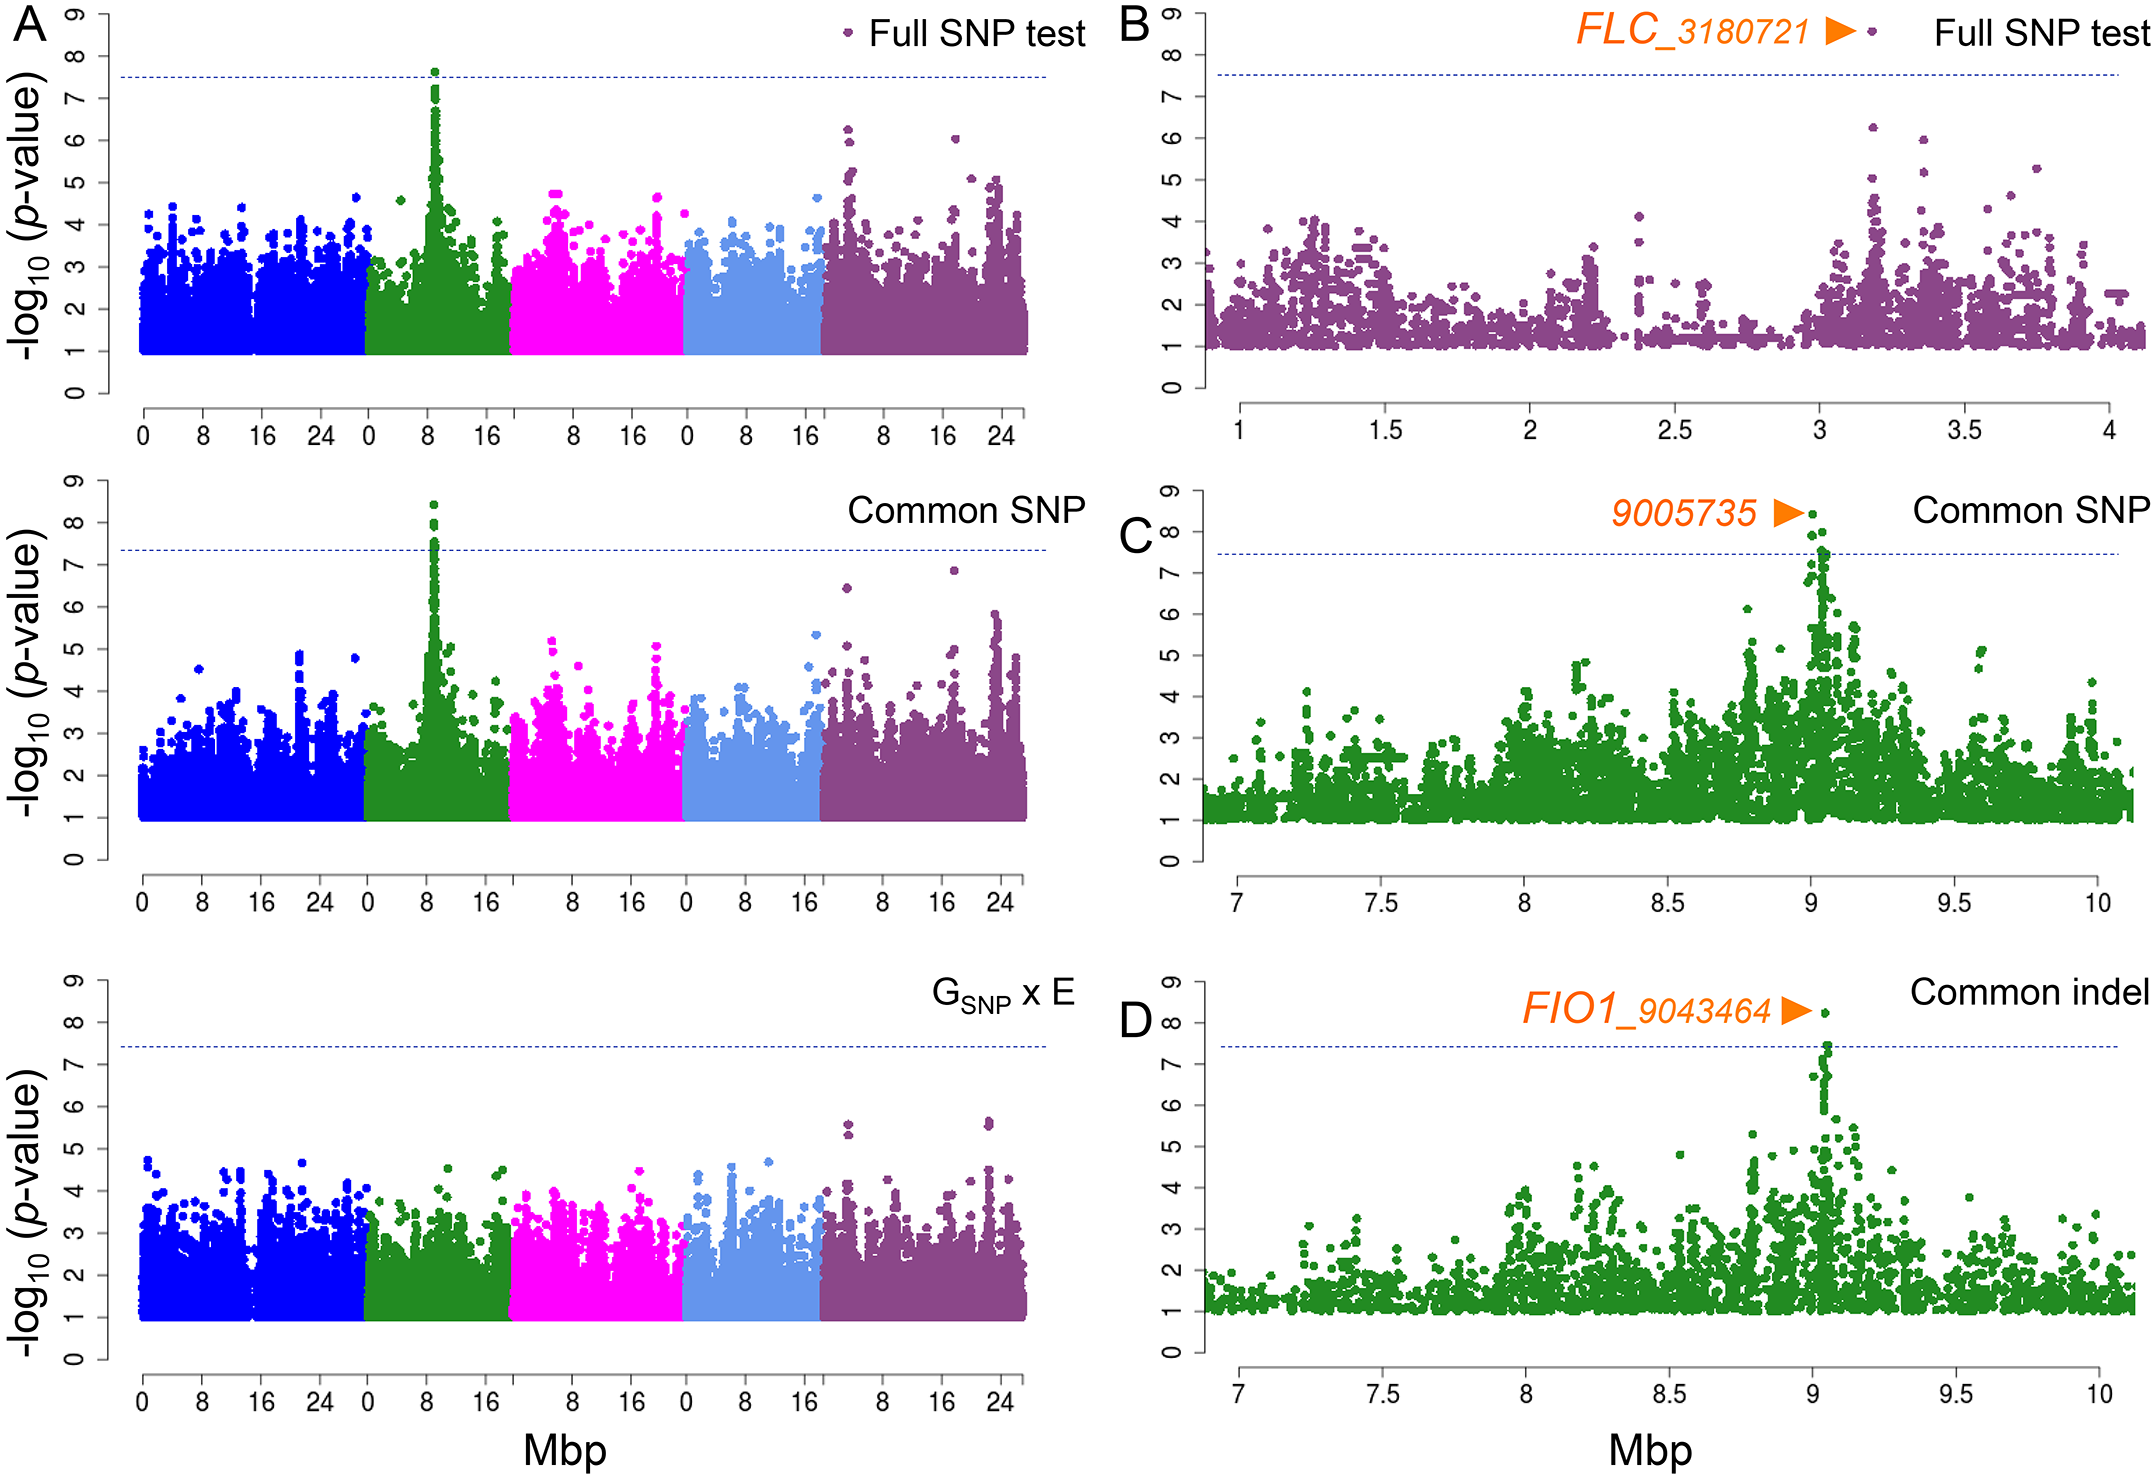 Manhattan plots of GWAS results for flowering time at 10°C and 16°C using MTMM.